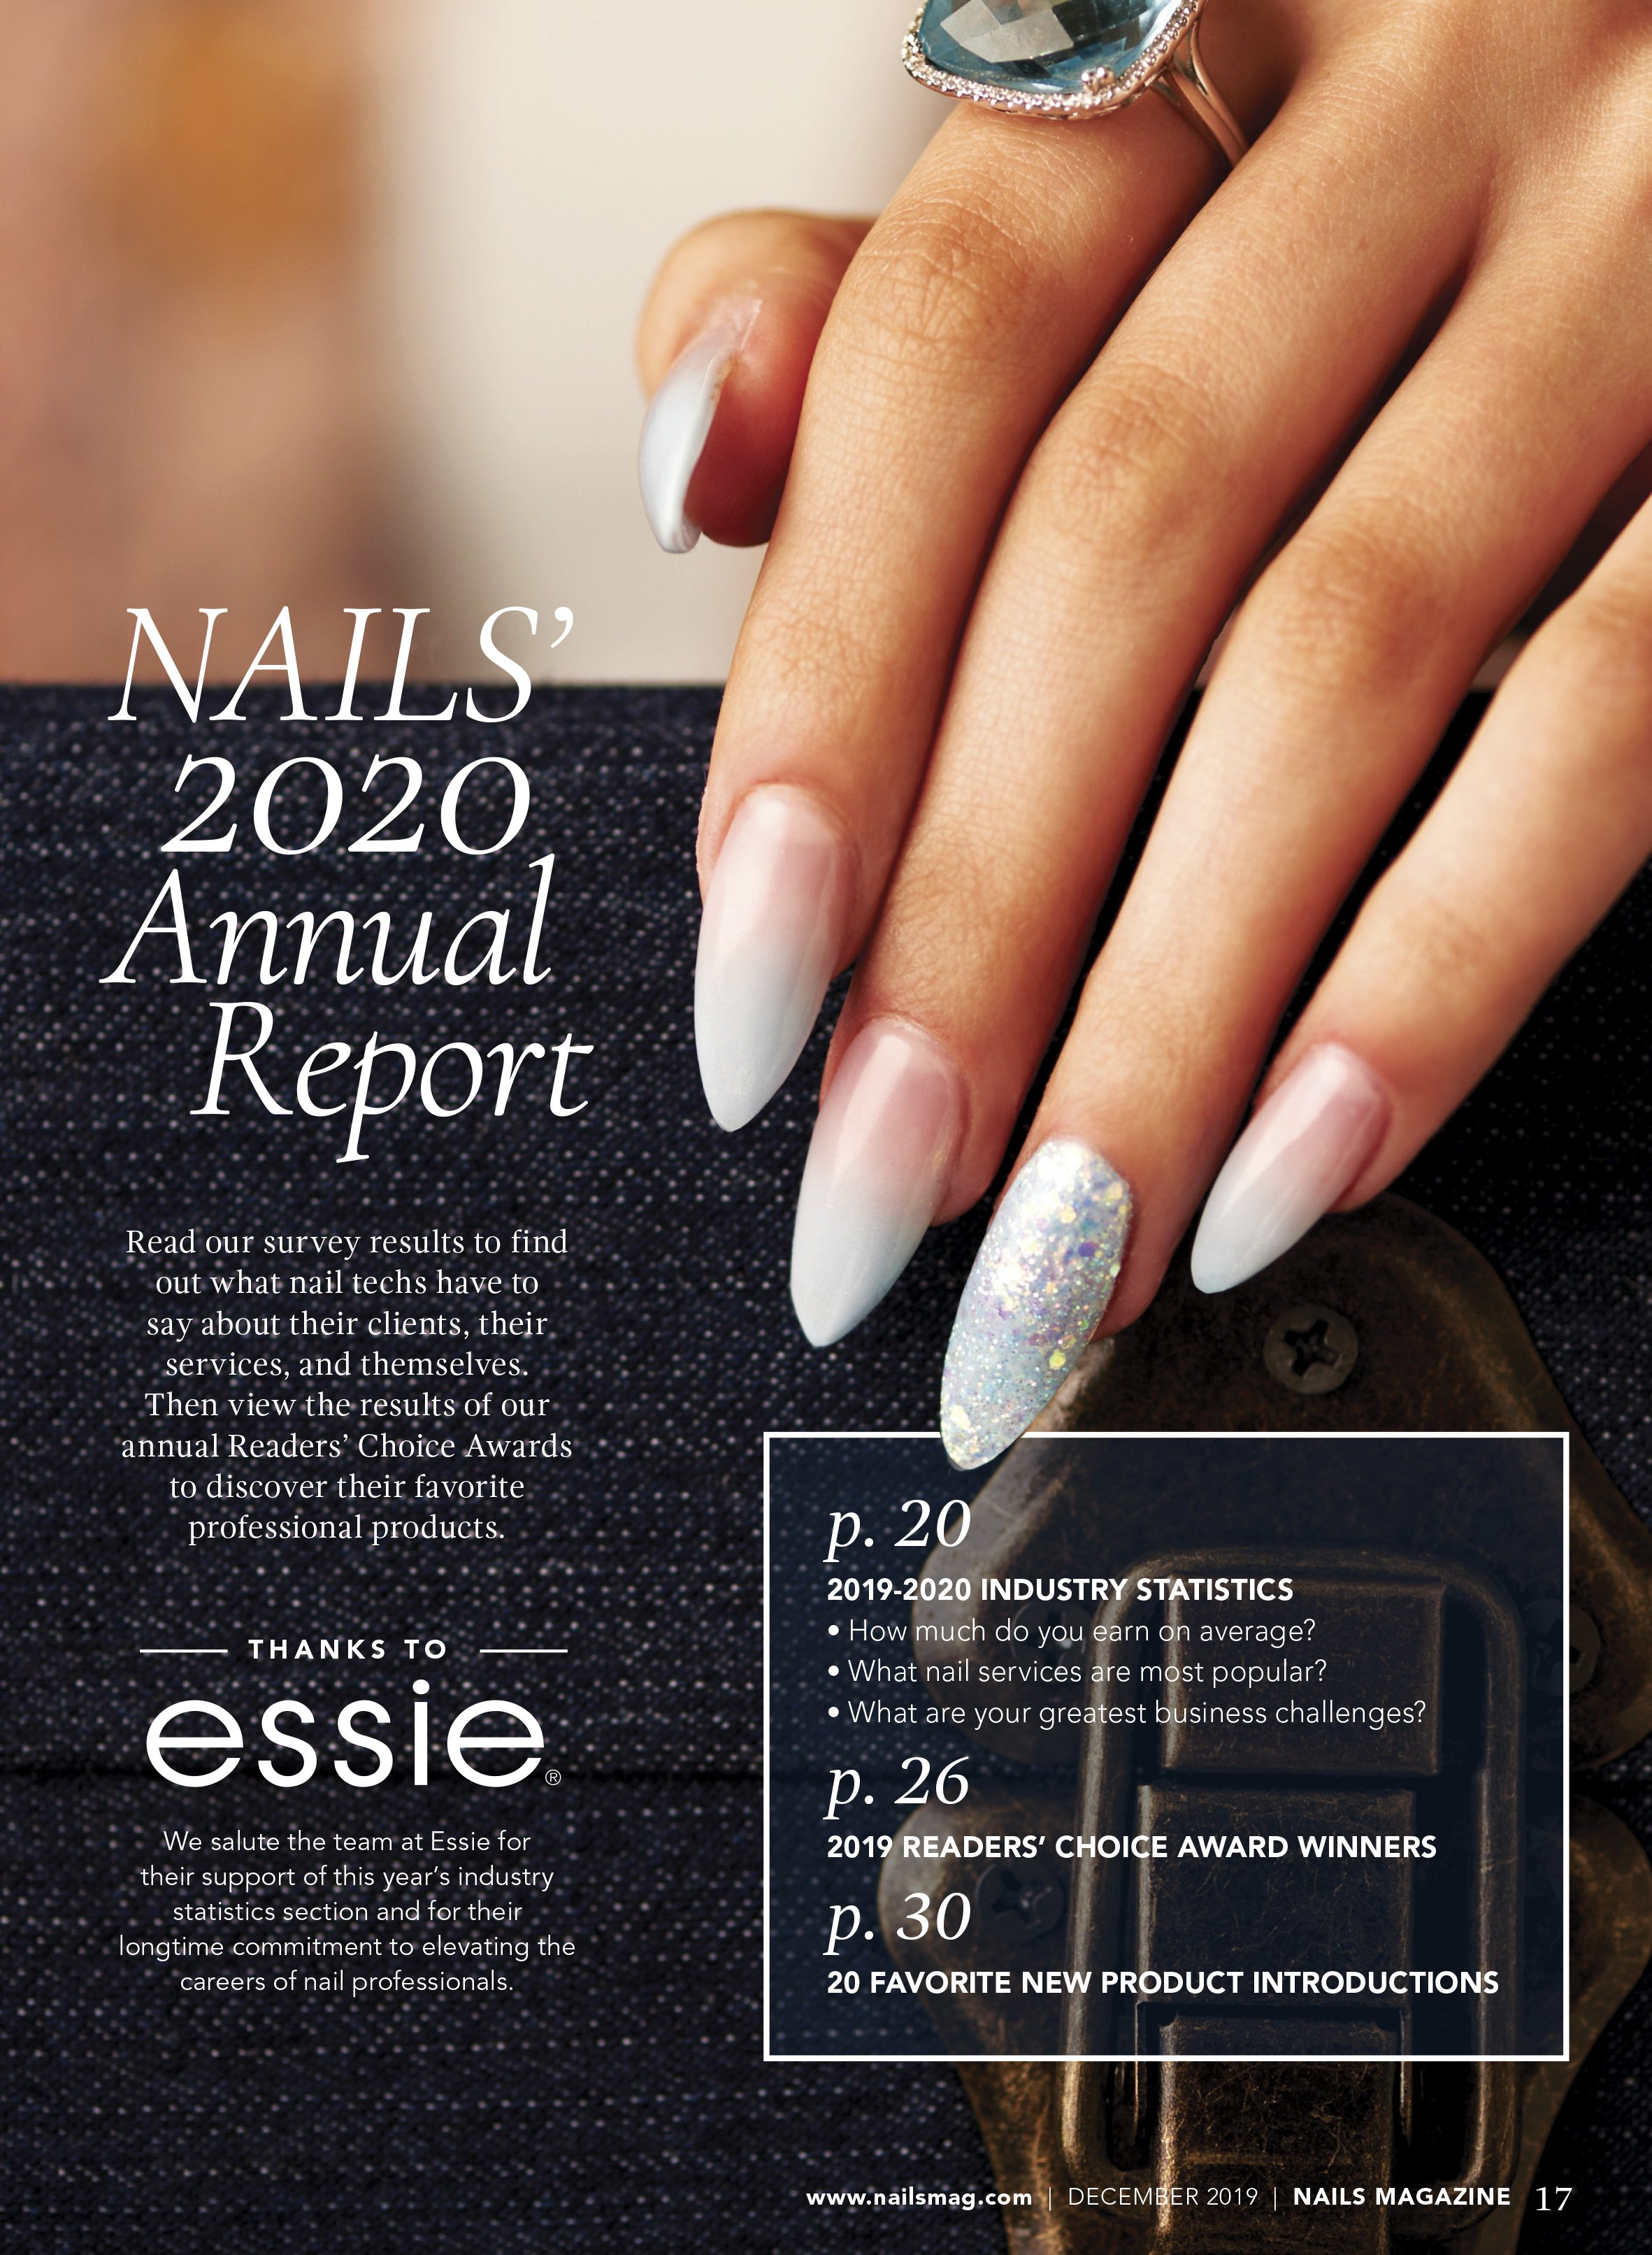 NAILS' 2020 Annual Report